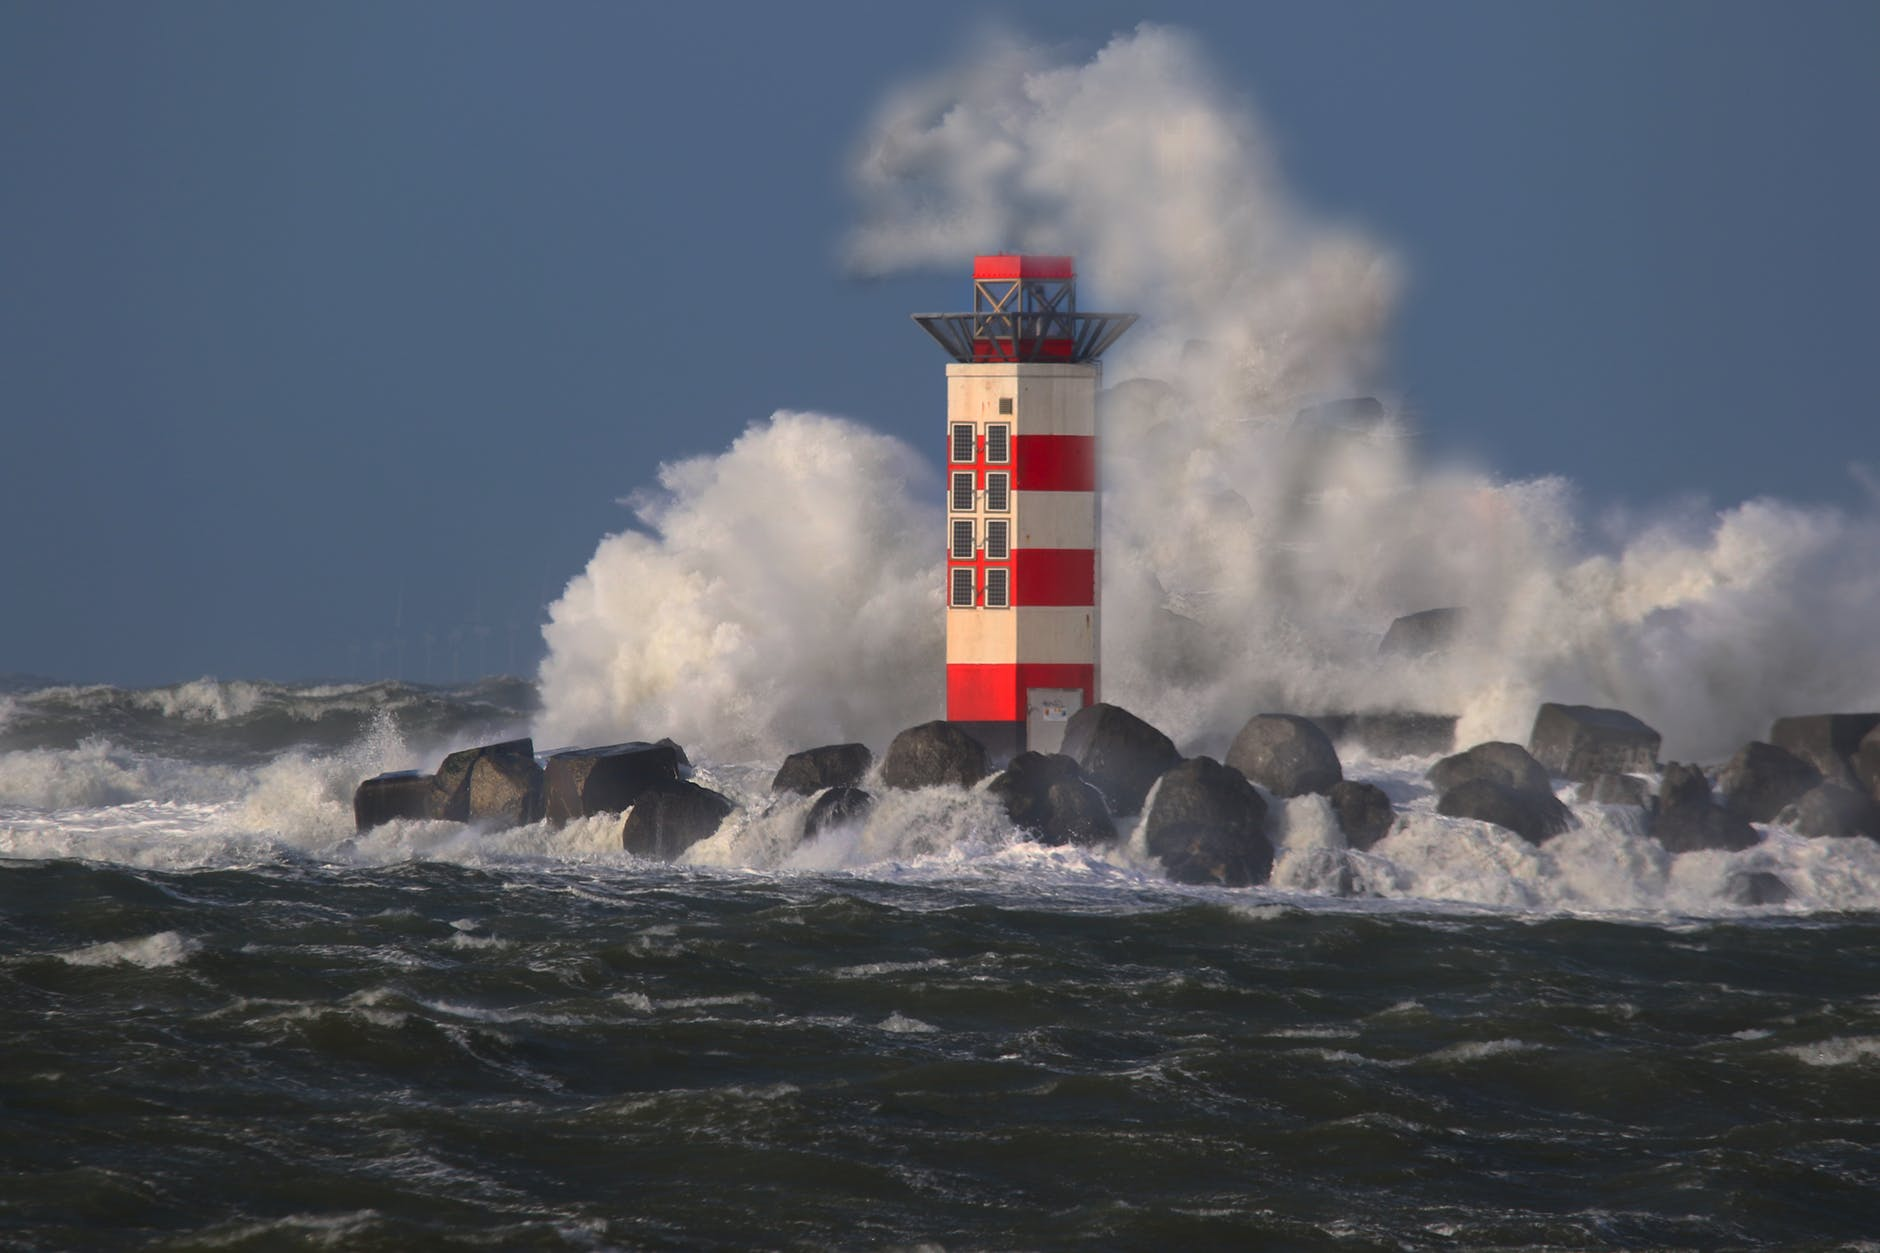 white and red lighthouse on rocky shore